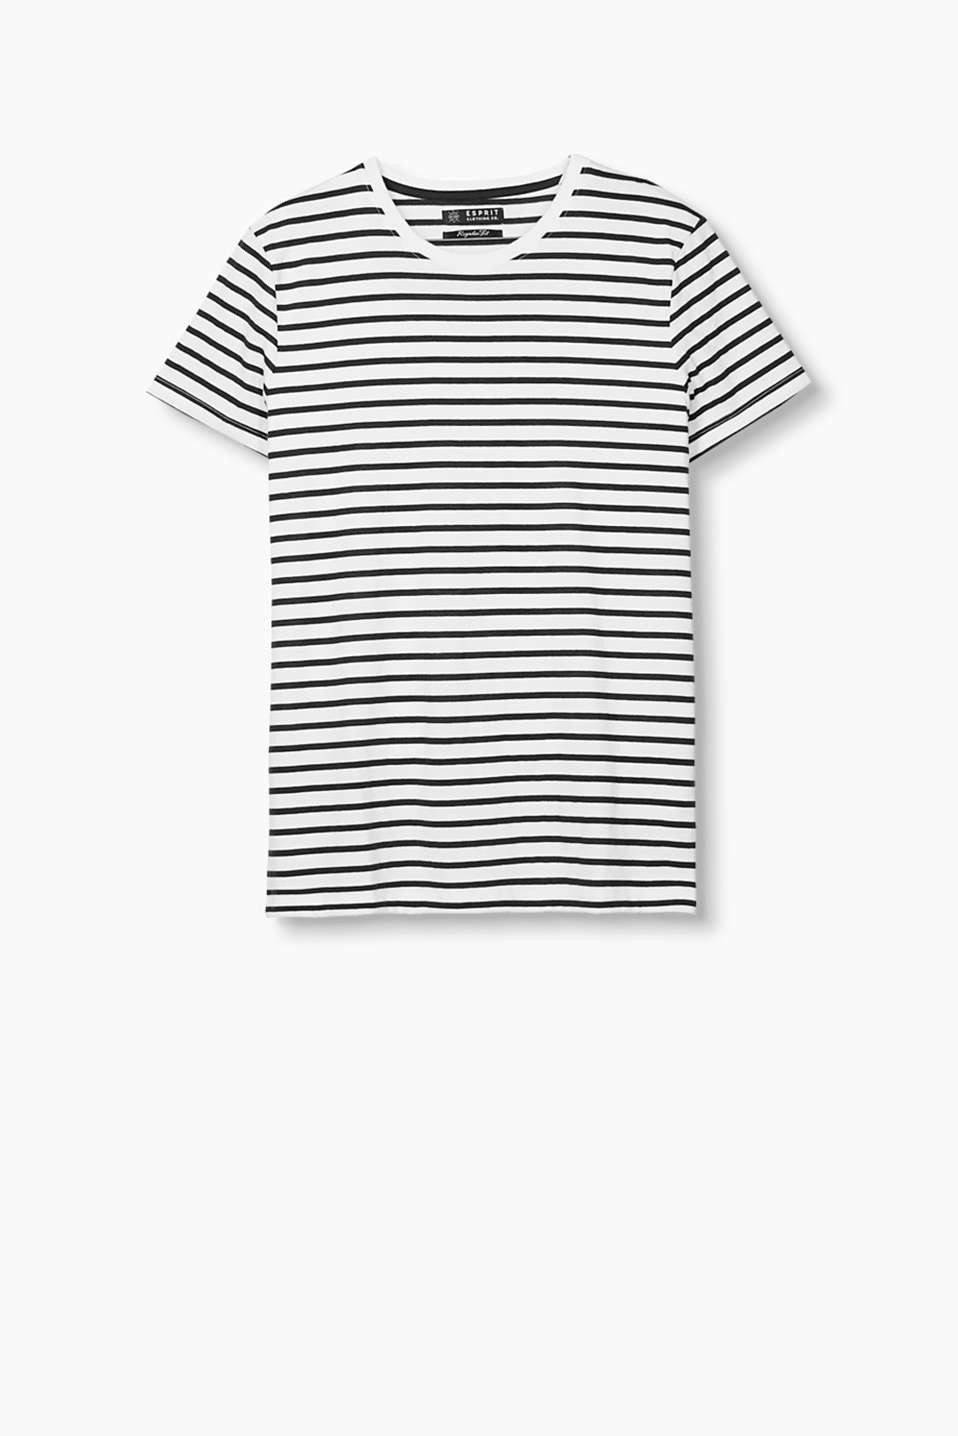 T-shirt in soft blended cotton in a nautical striped look